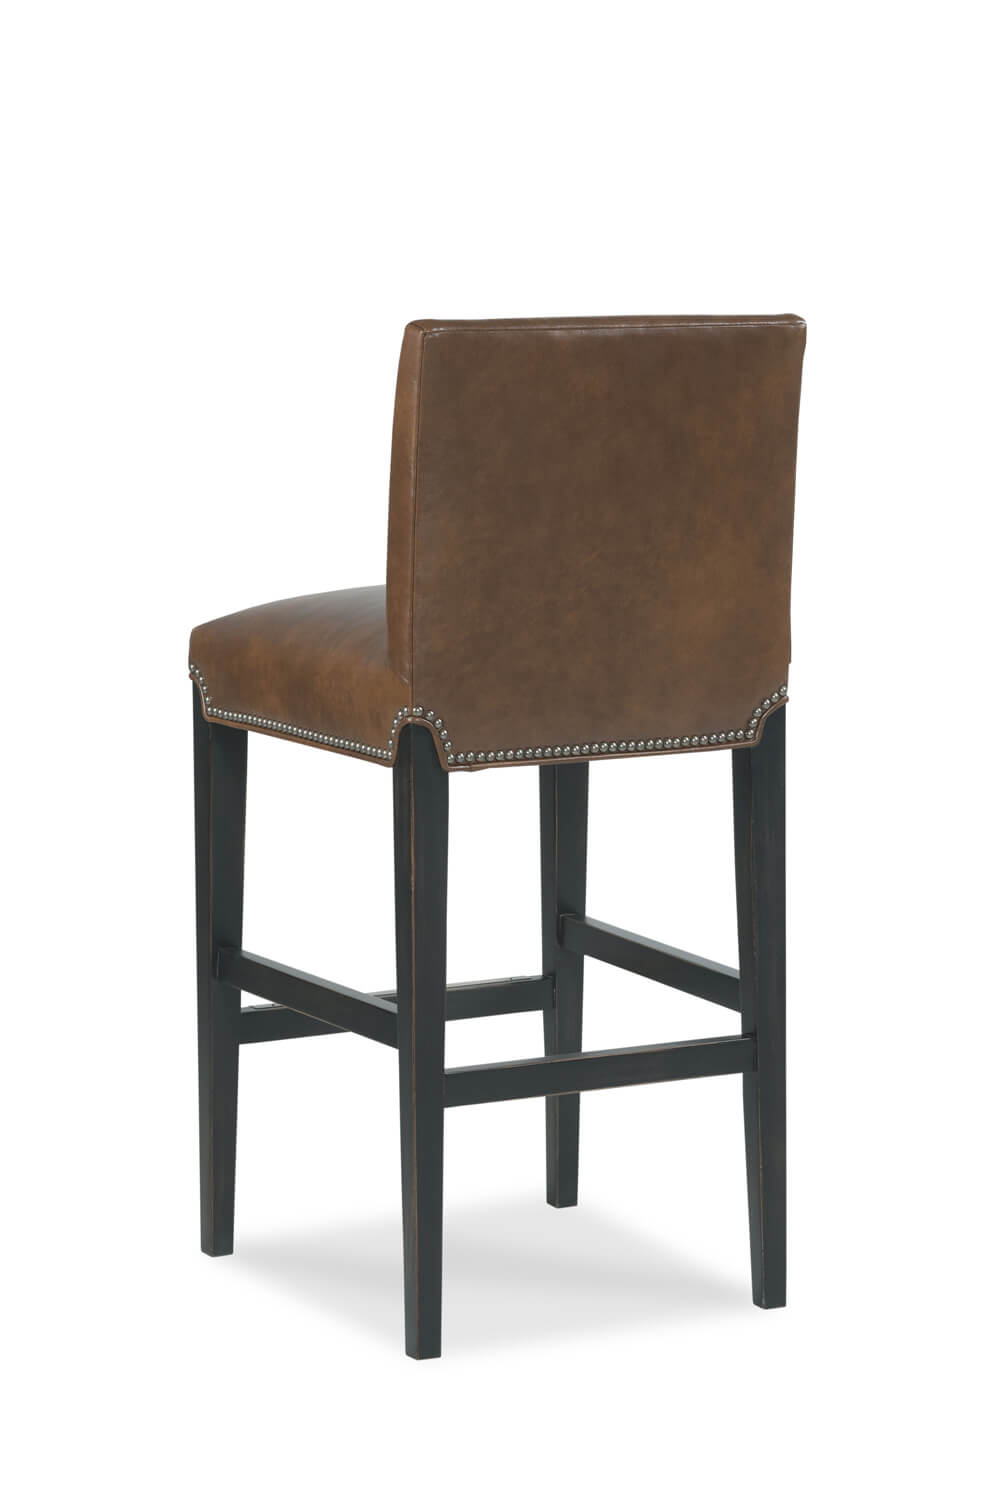 buy roxanne modern upholstered wood counter stool with nailhead trim. Black Bedroom Furniture Sets. Home Design Ideas